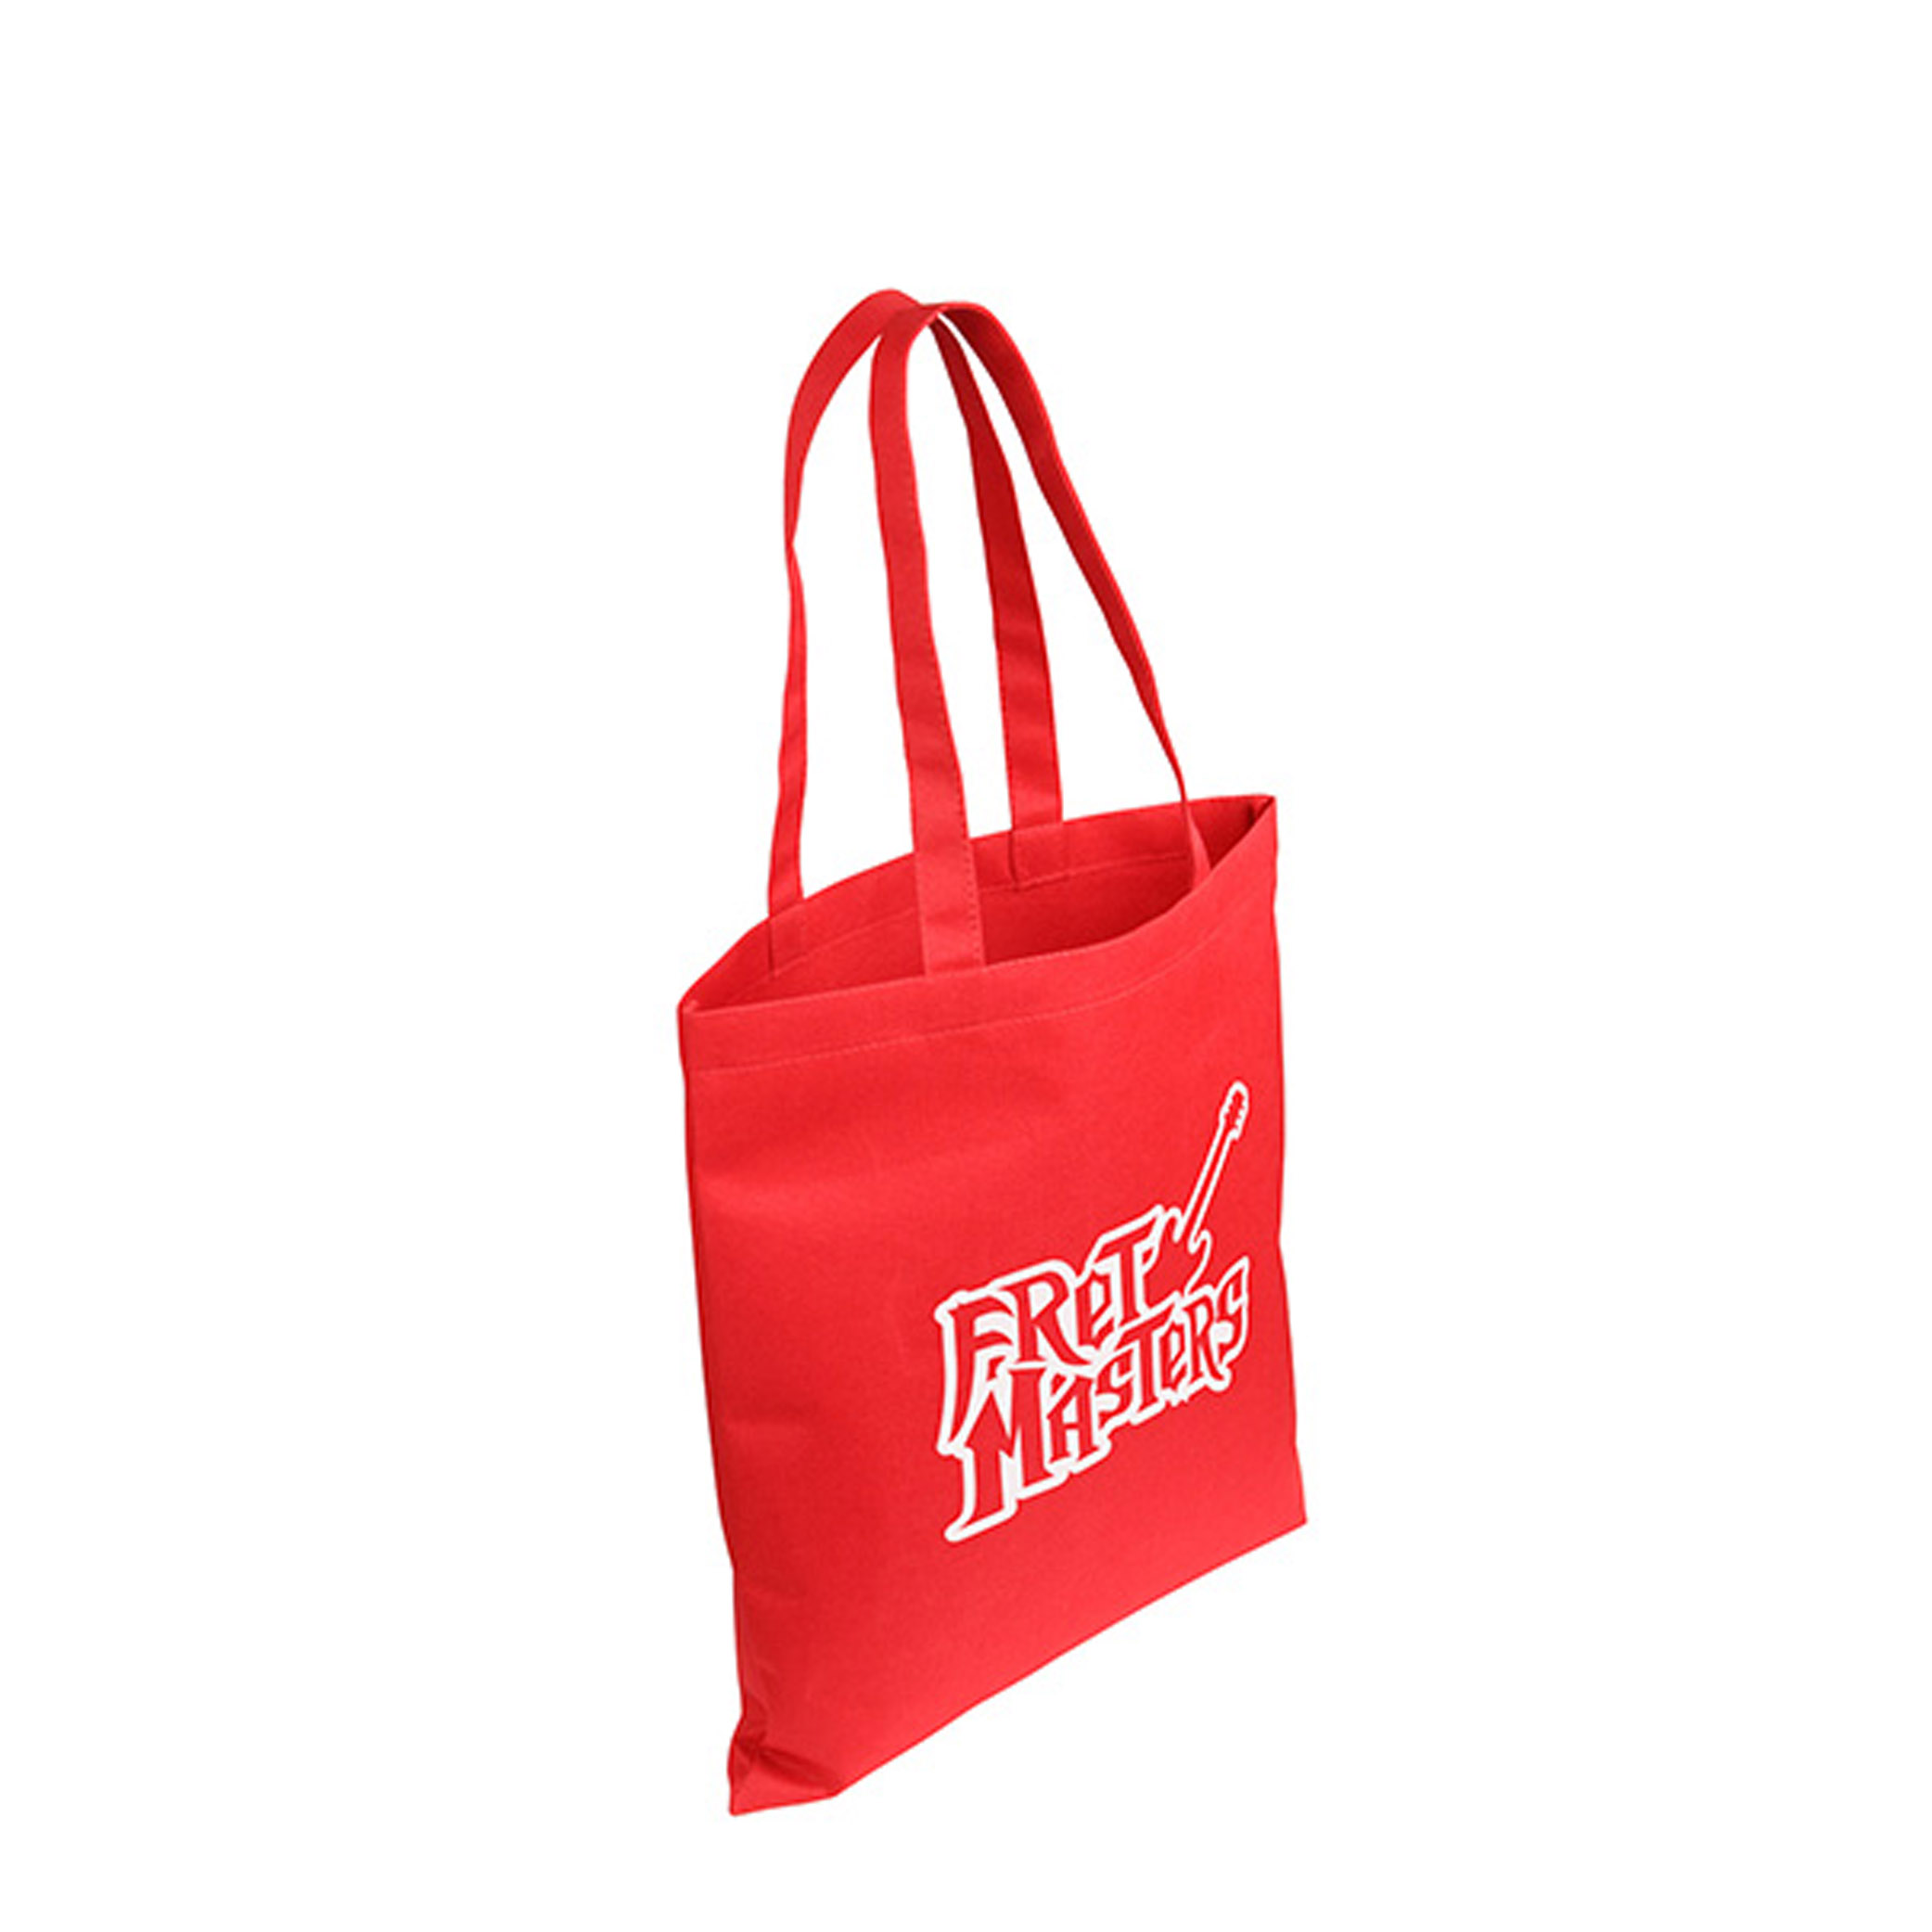 Gulf Breeze Recycled P.E.T. Tote Bag